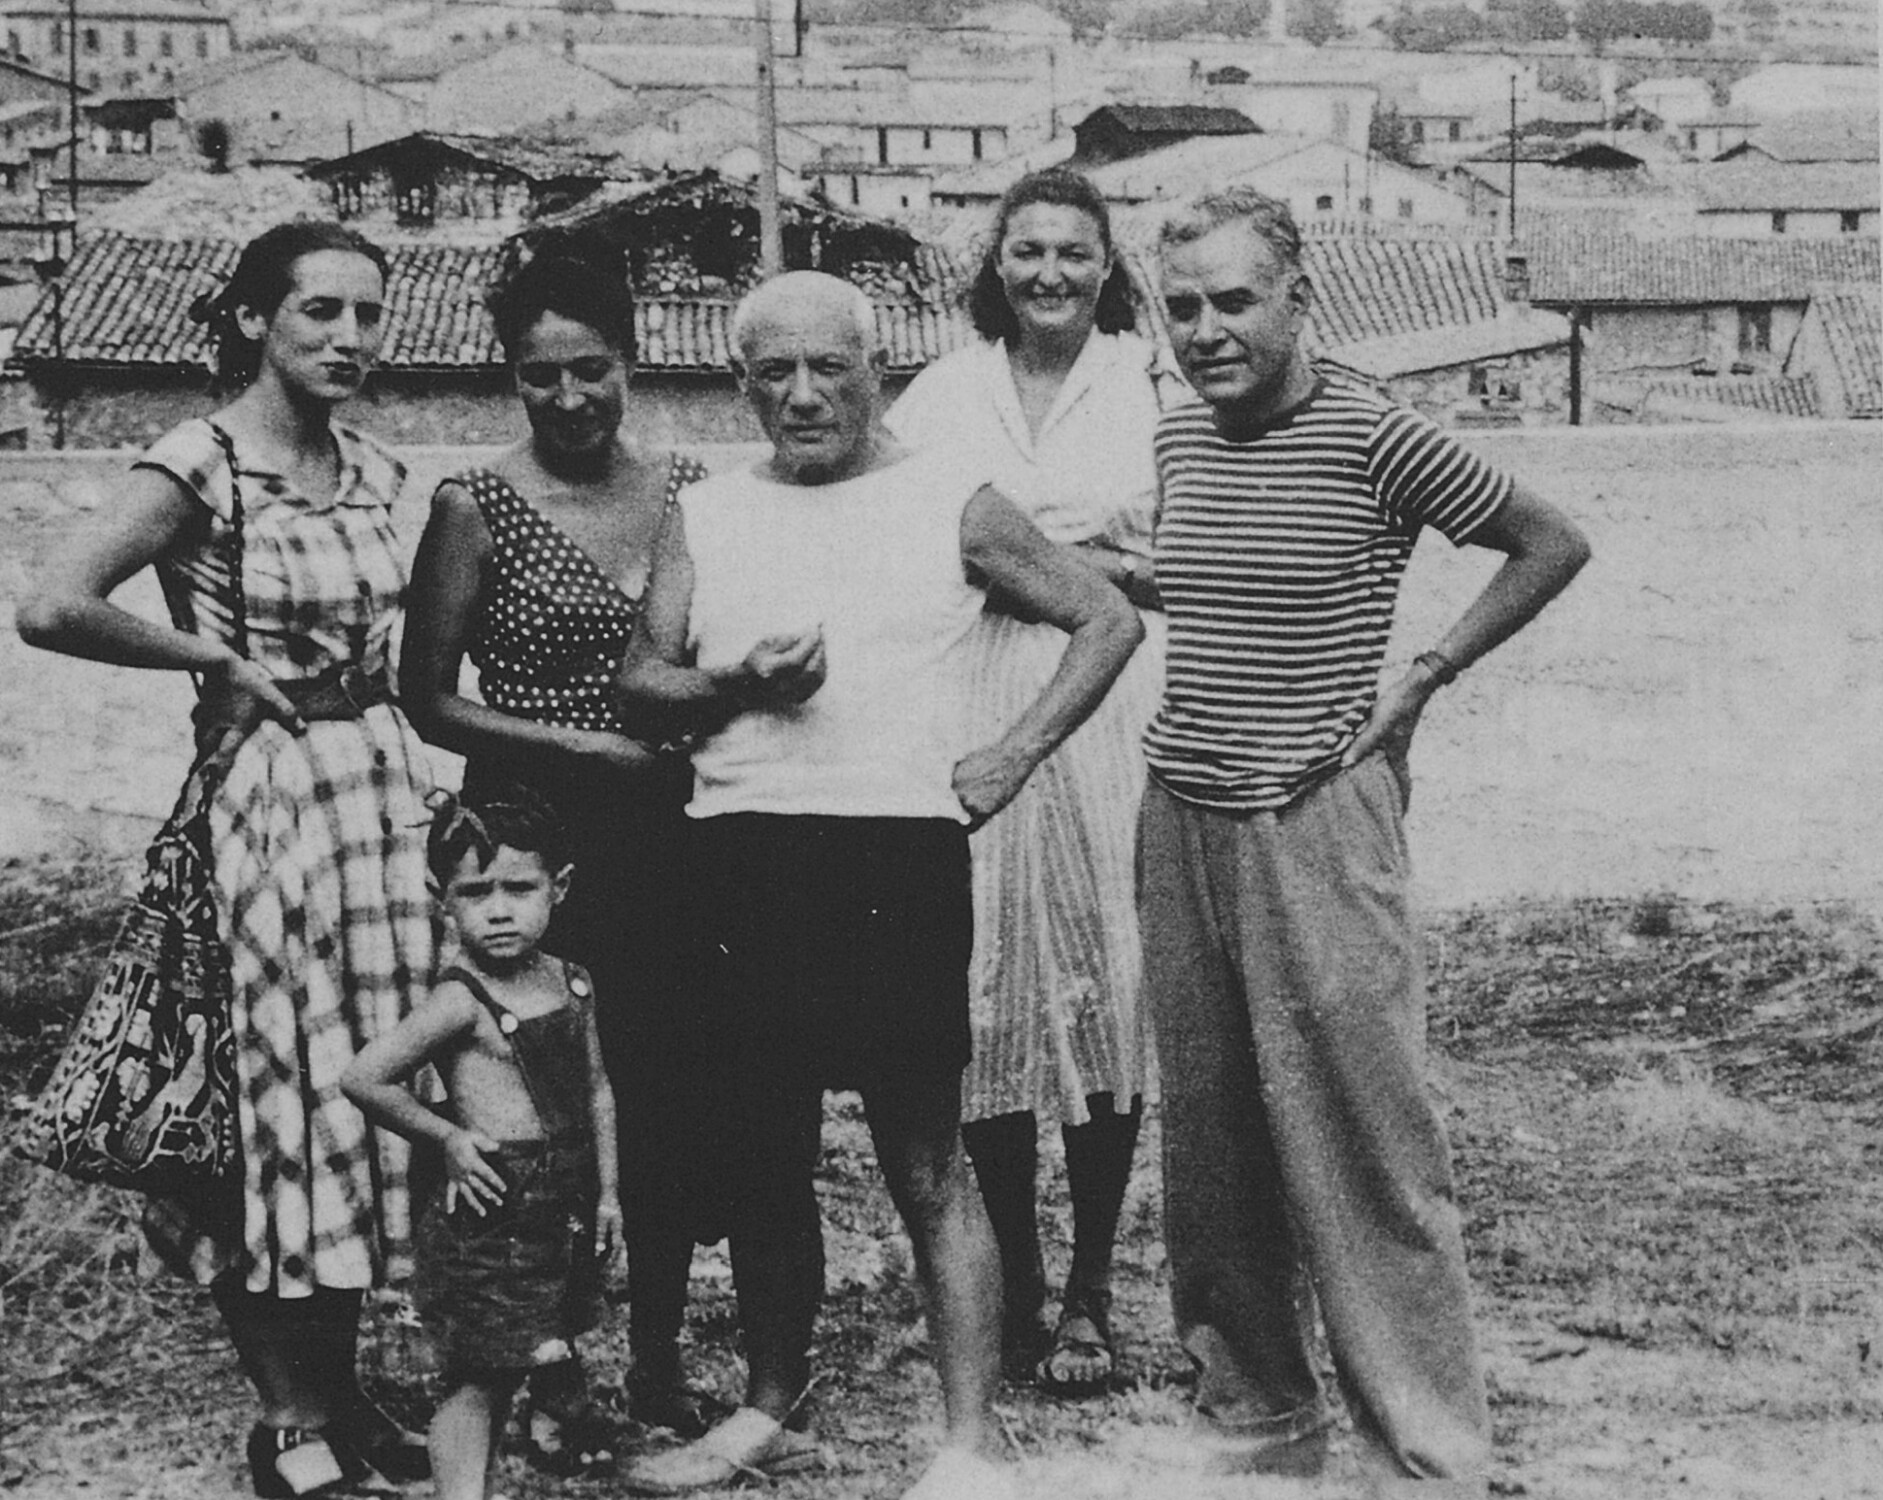 Rufino and Olga Tamayo with Pablo Picasso and family, 1949.